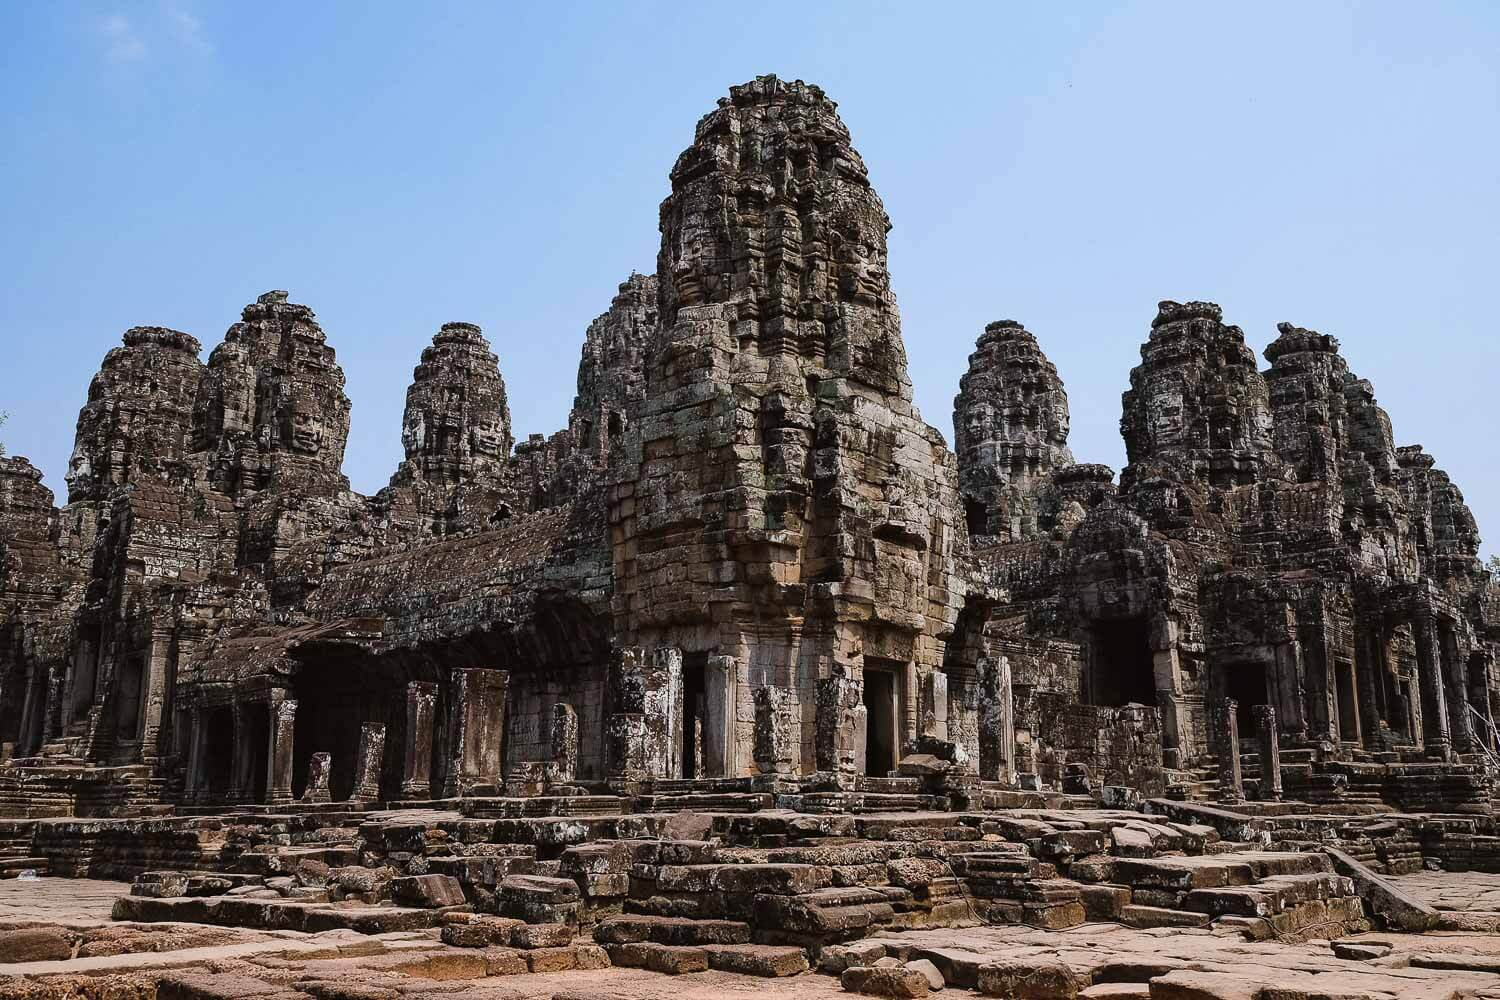 """The Temple of Bayon is known for the buddha faces in the wall peaks, Siem Reap. Travel photography and guide by © Natasha Lequepeys for """"And Then I Met Yoko"""". #siemreap #angkorwat #templebayon #travelguide #travelblog #travelitinerary #itinerary #siemreapitinerary #seasia #cambodia #travelcambodia #travelsiemreap #photoblog #travelblogger #travelphotography #landscapephotography #fujifilm #temples #siemreapprivatetour #atv"""